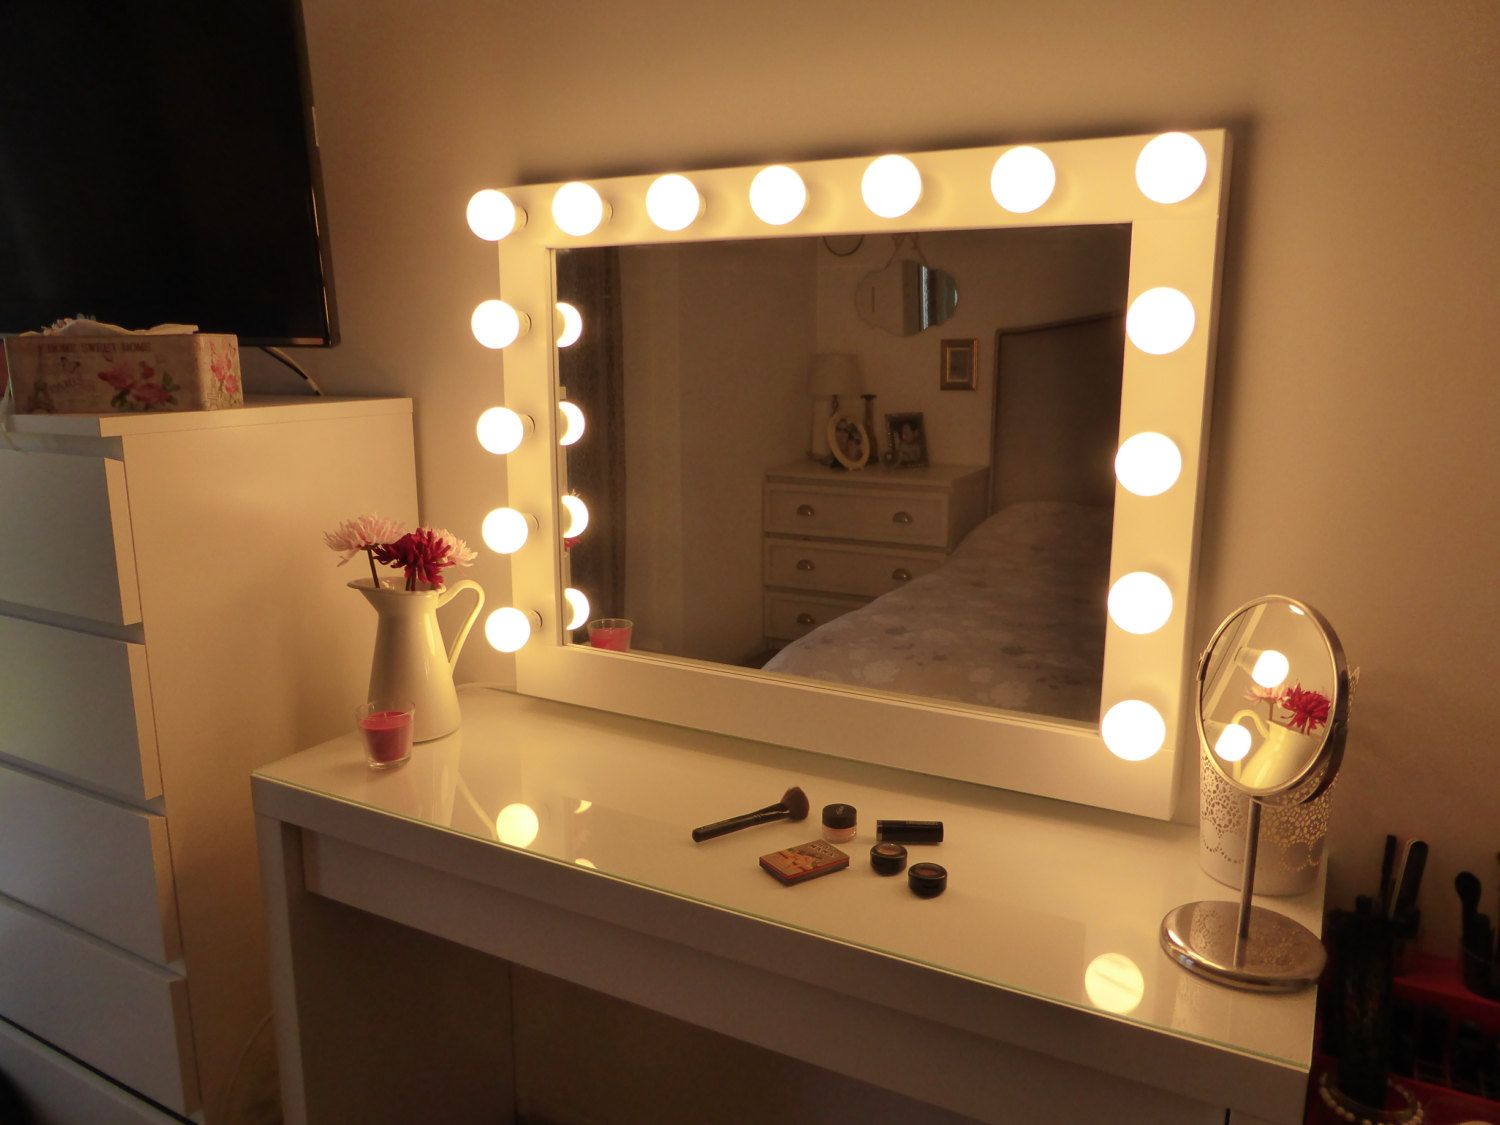 Hollywood lighted vanity mirror-large makeup mirror with lights-Wall hanging/free standing ...